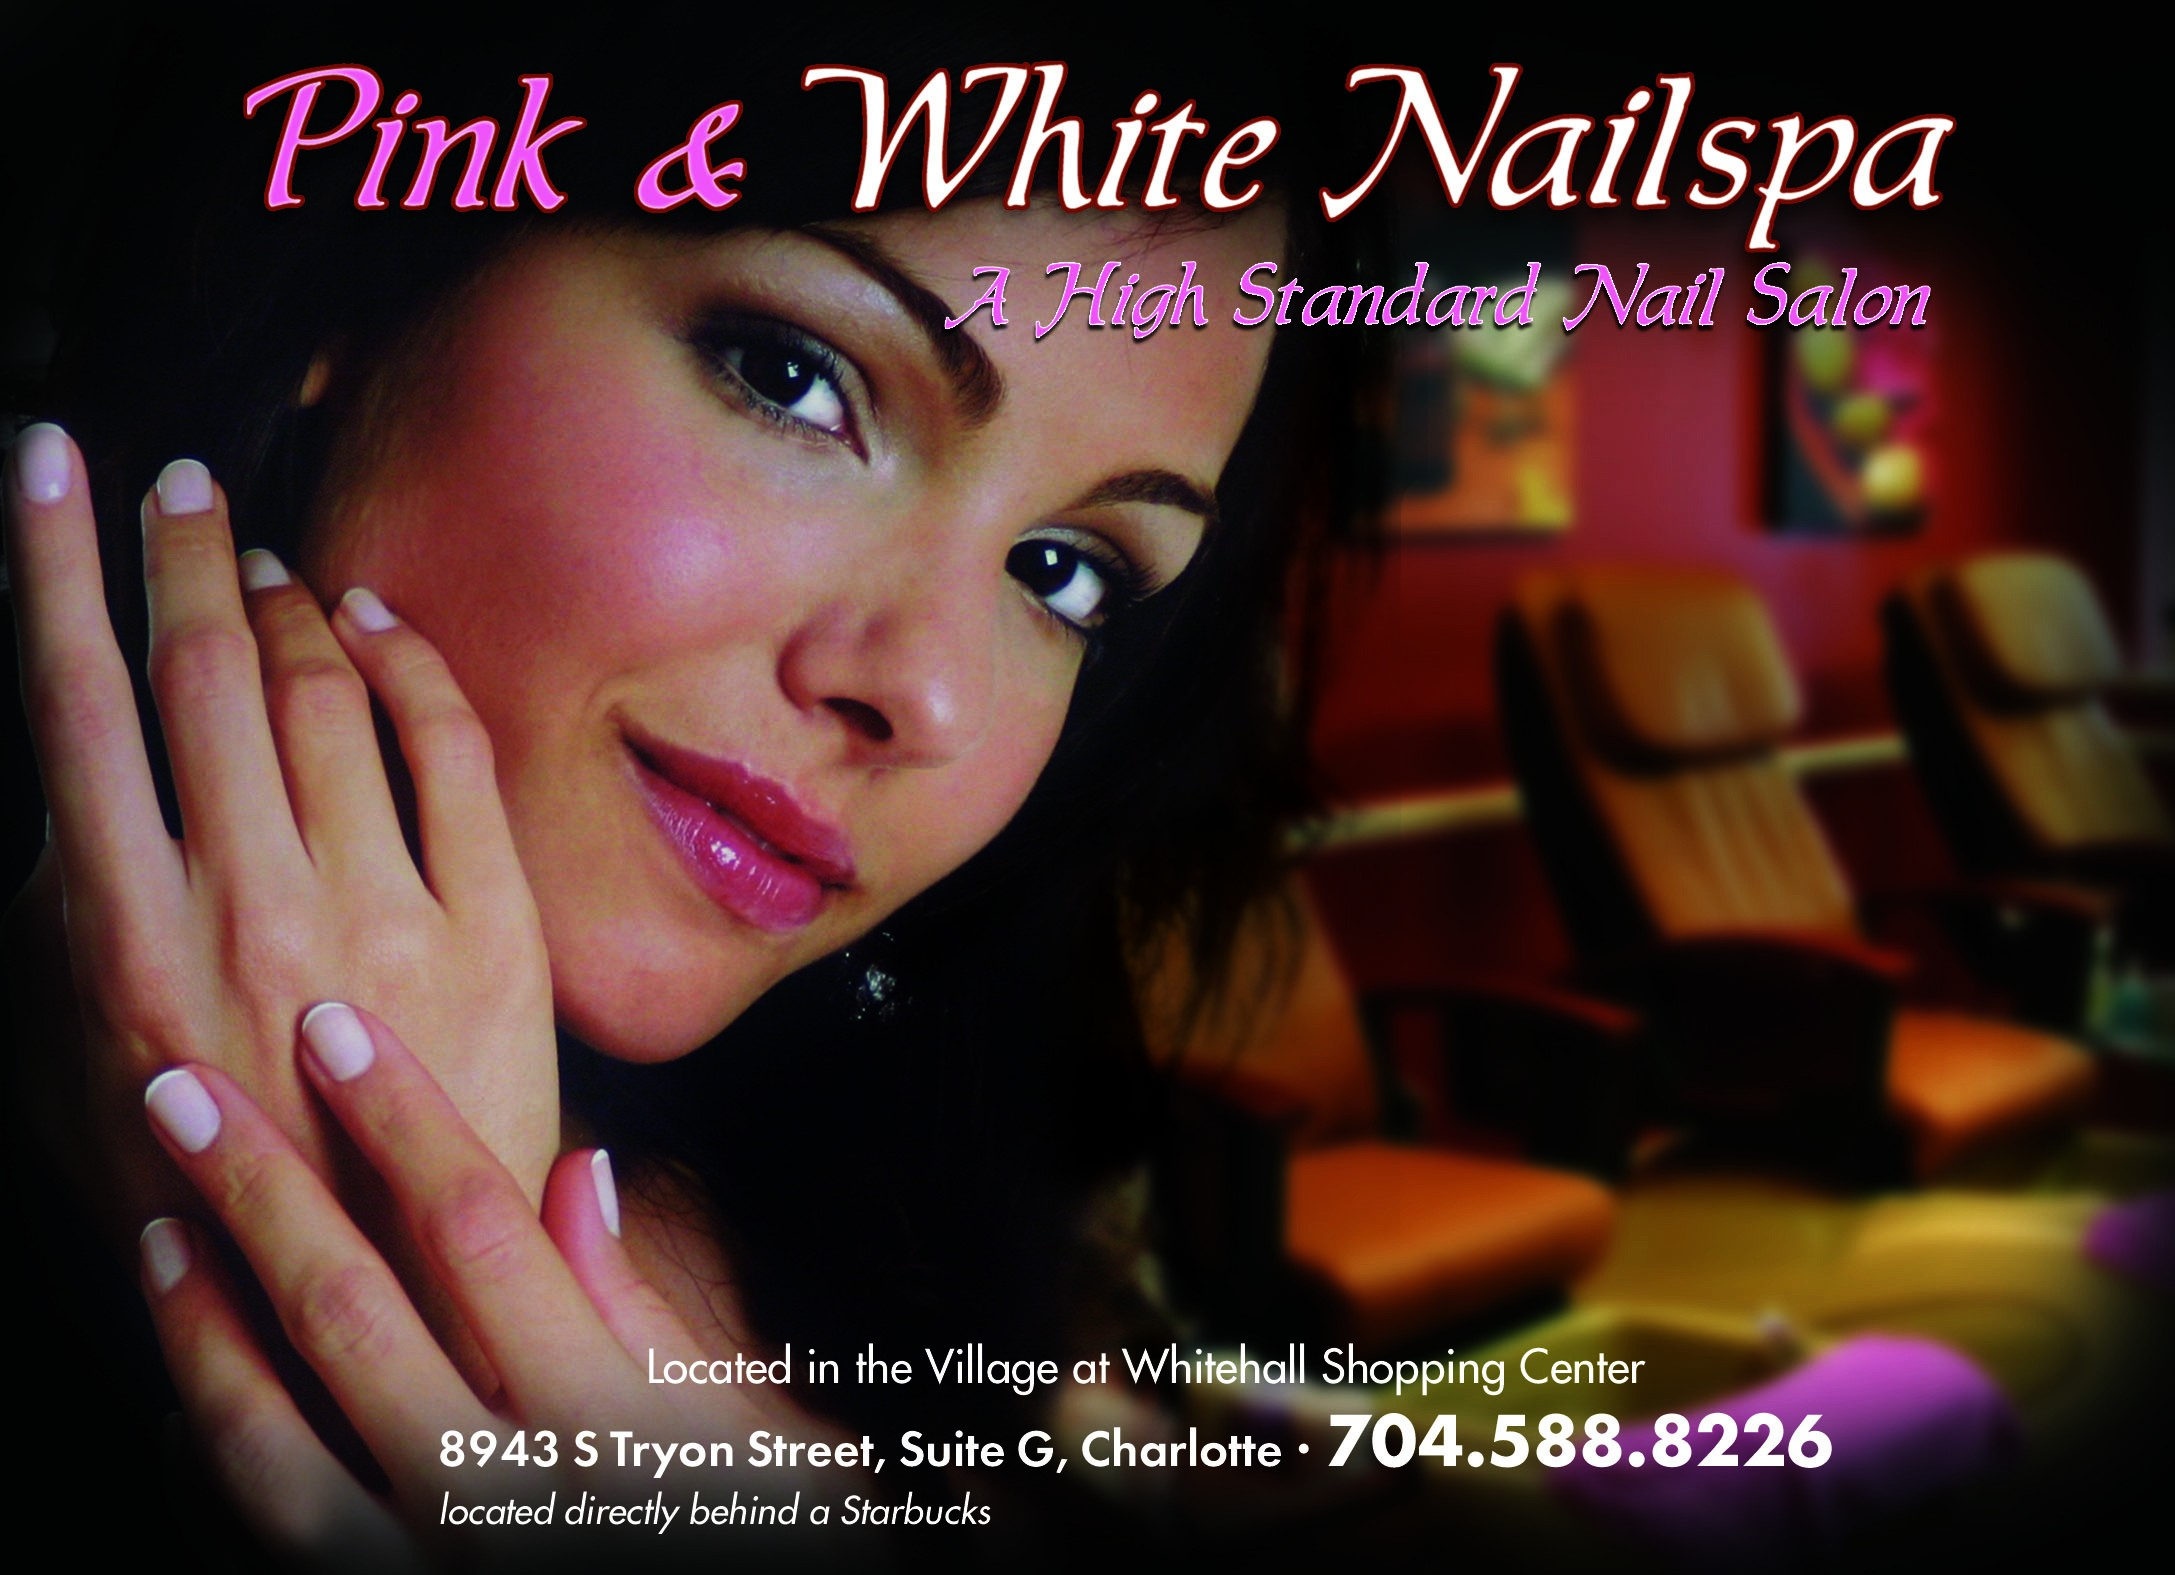 Pink & White Nails - Spa certificates great for family, - friends and businesses. A great - holiday gift! We are a new salon, clean - and friendly with professional attention - to your hands and feet. - 8943 S. Tryon St., Ste. G. 704-588-8226 - Monday-Friday 9:30 a.m.-7 p.m., Saturday 9 a.m.-6 p.m., Sunday 12 p.m.-5 p.m. - Credit cards accepted